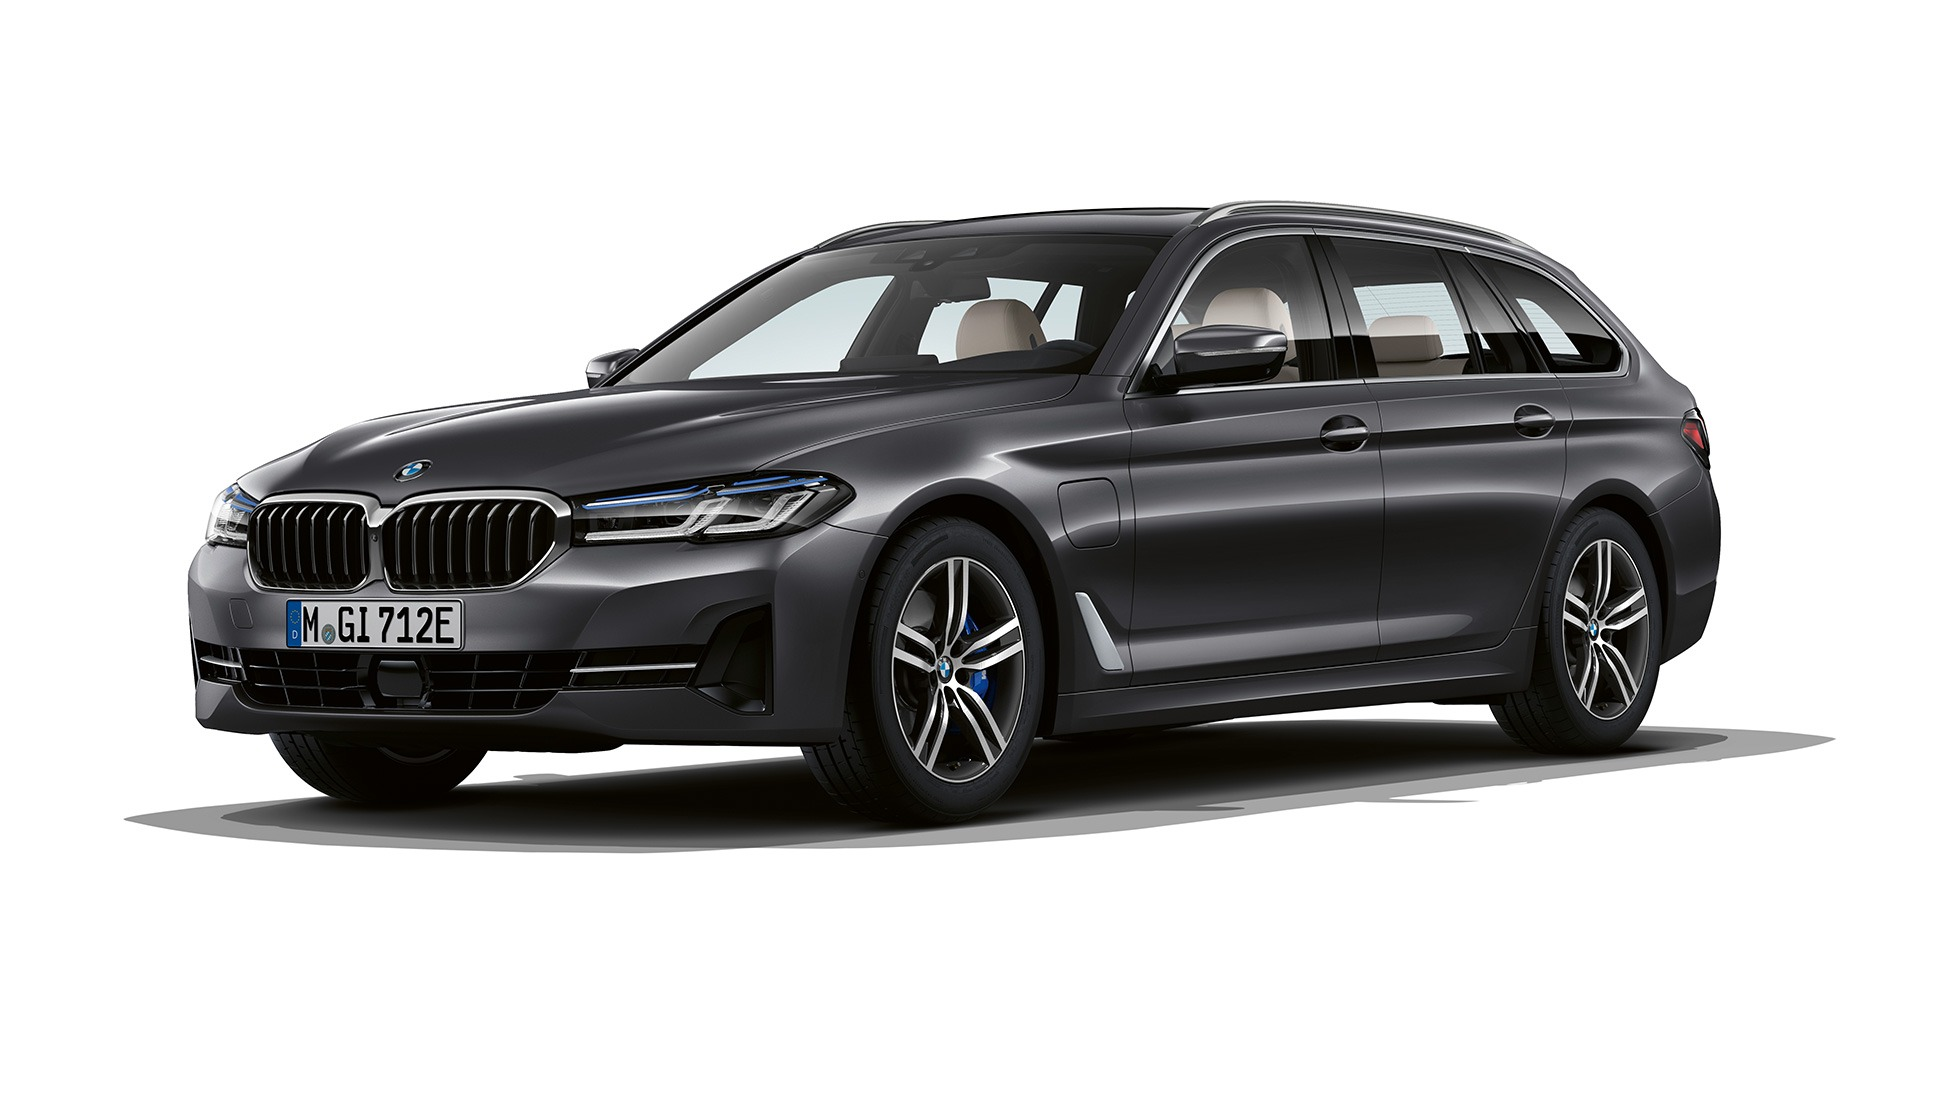 bmw-5-series-touring-models-and-equipment-lines-01-01